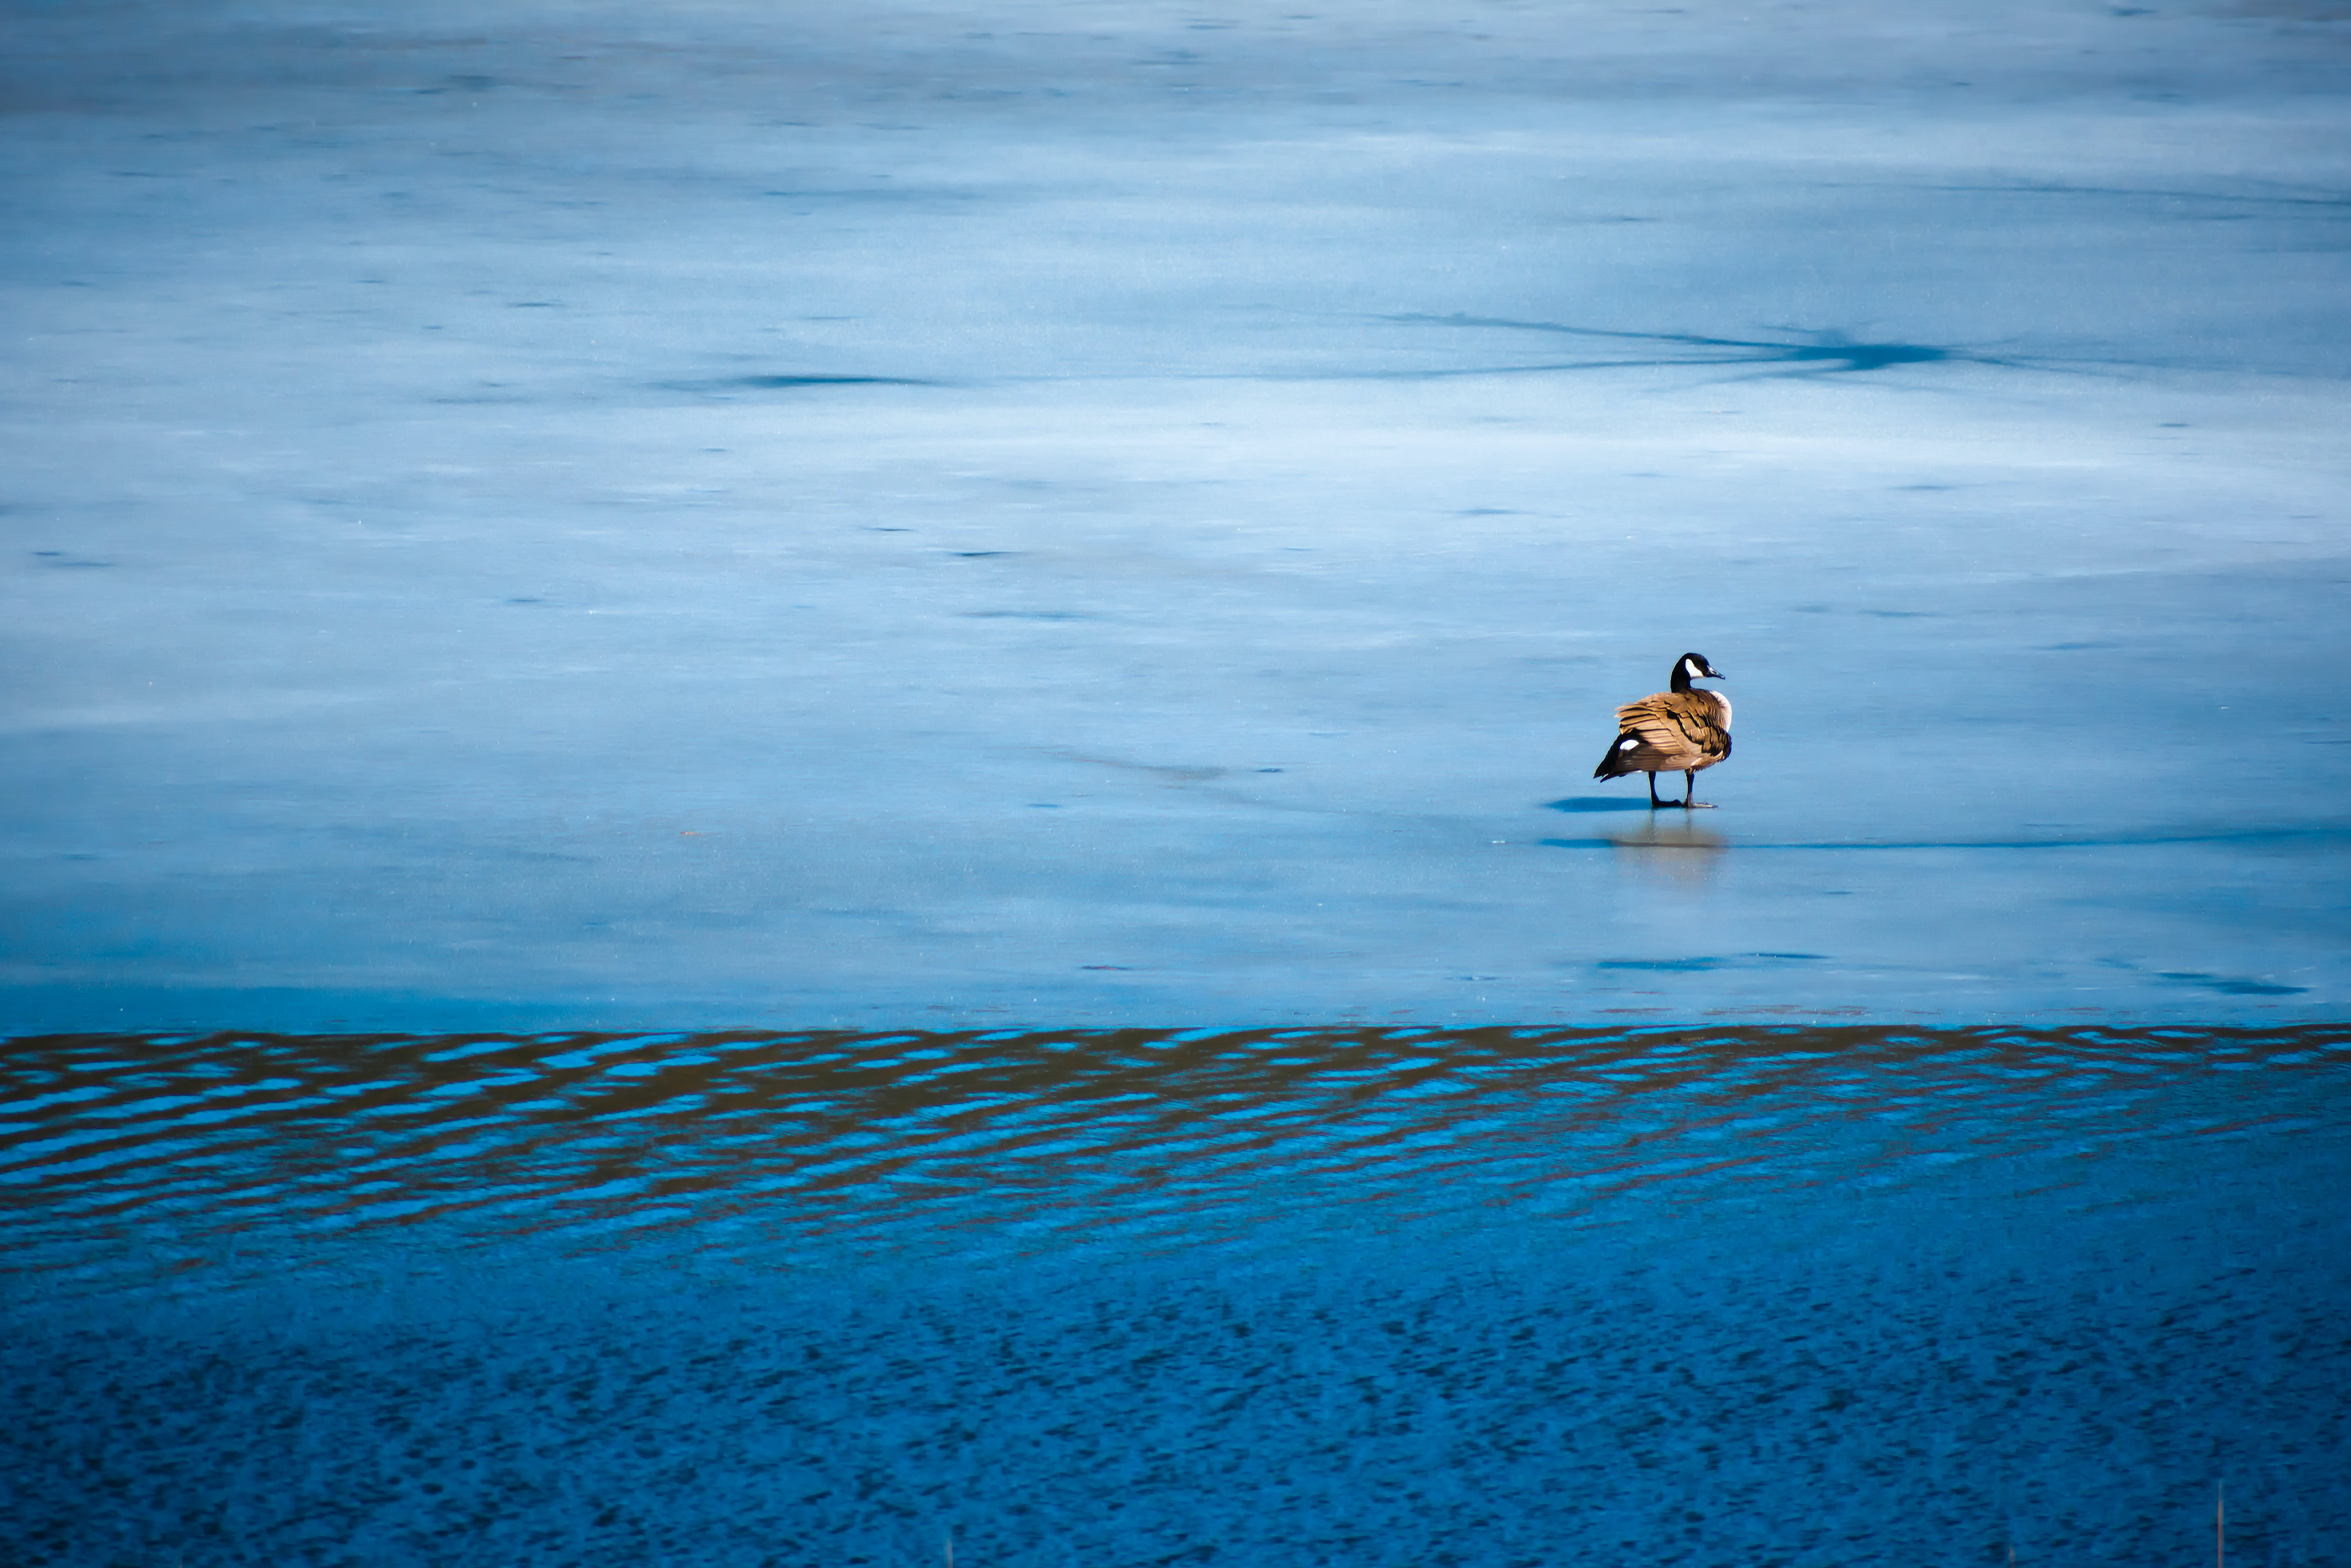 Brown and White Bird on Body of Water